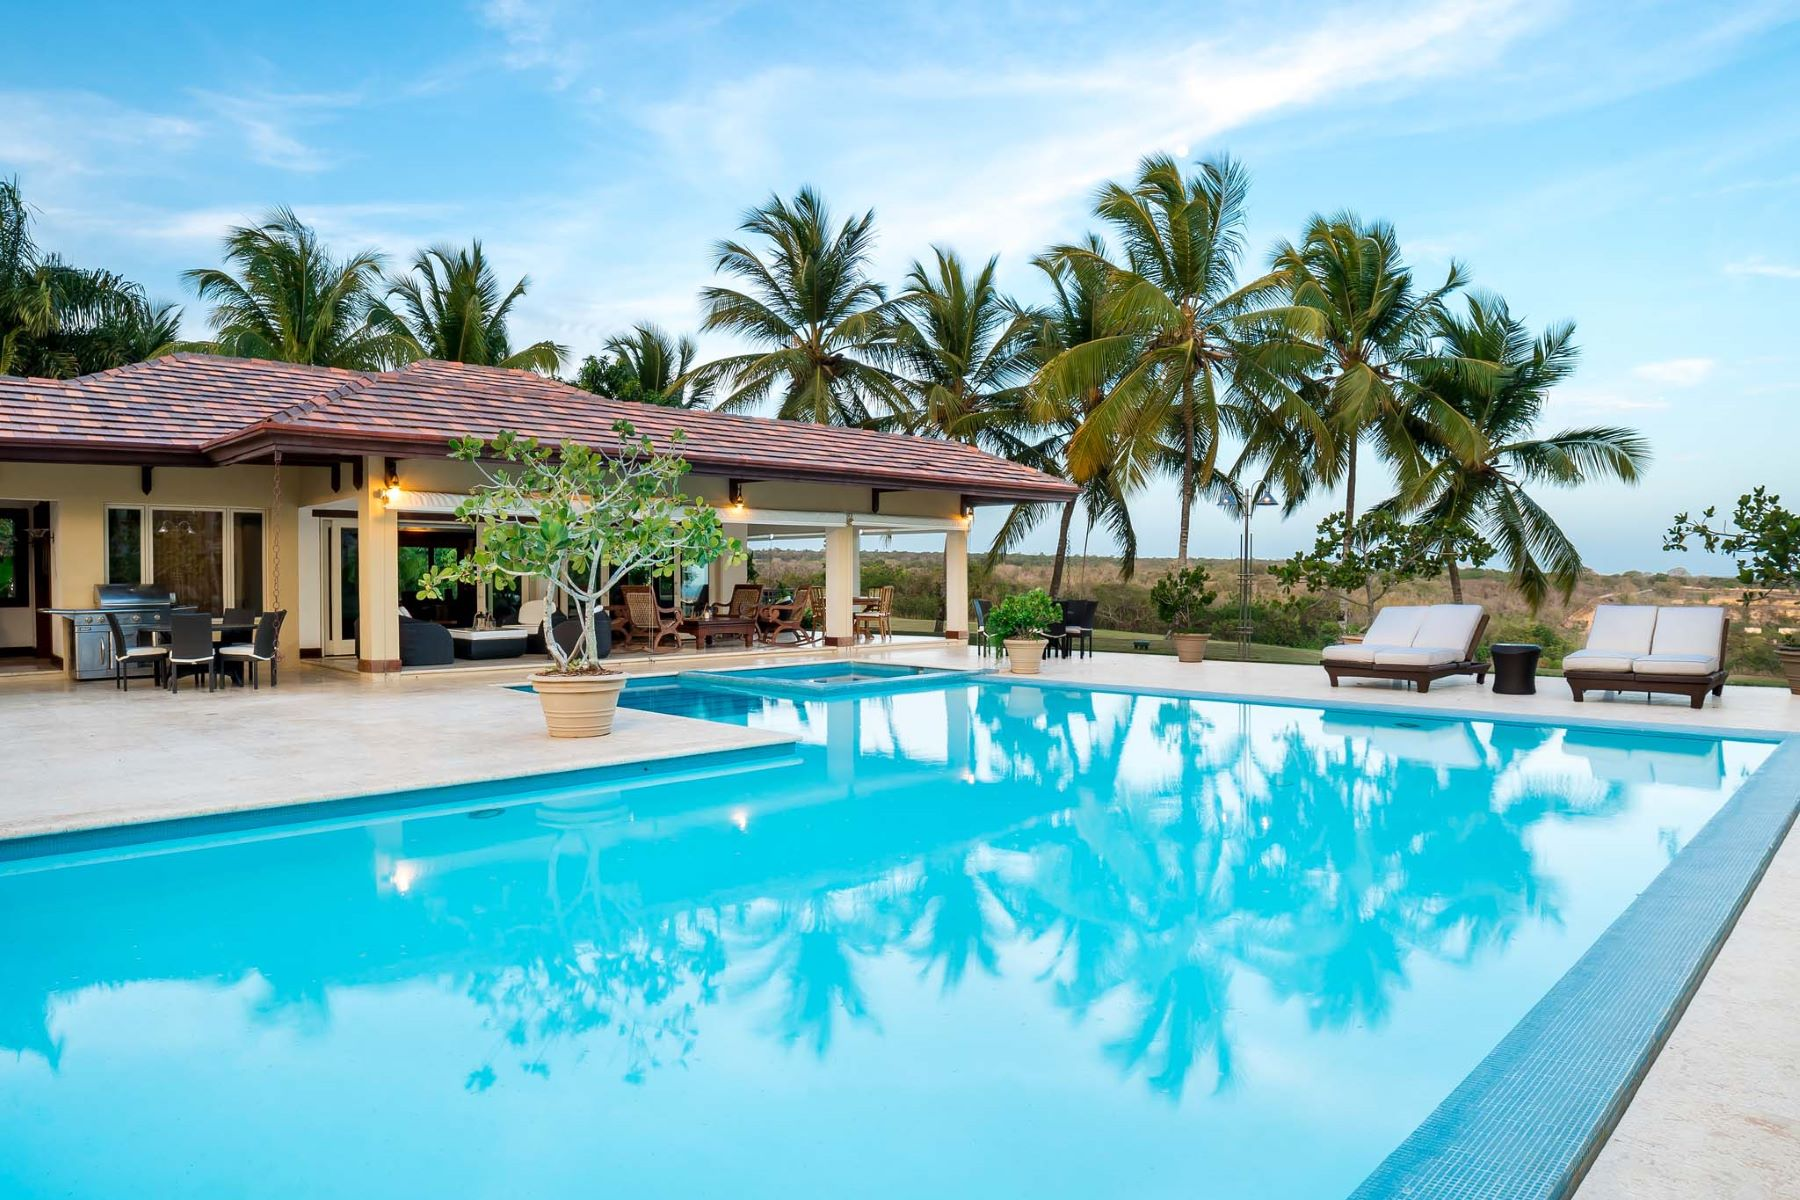 Single Family Homes for Sale at Casa De Campo, La Romana Dominican Republic